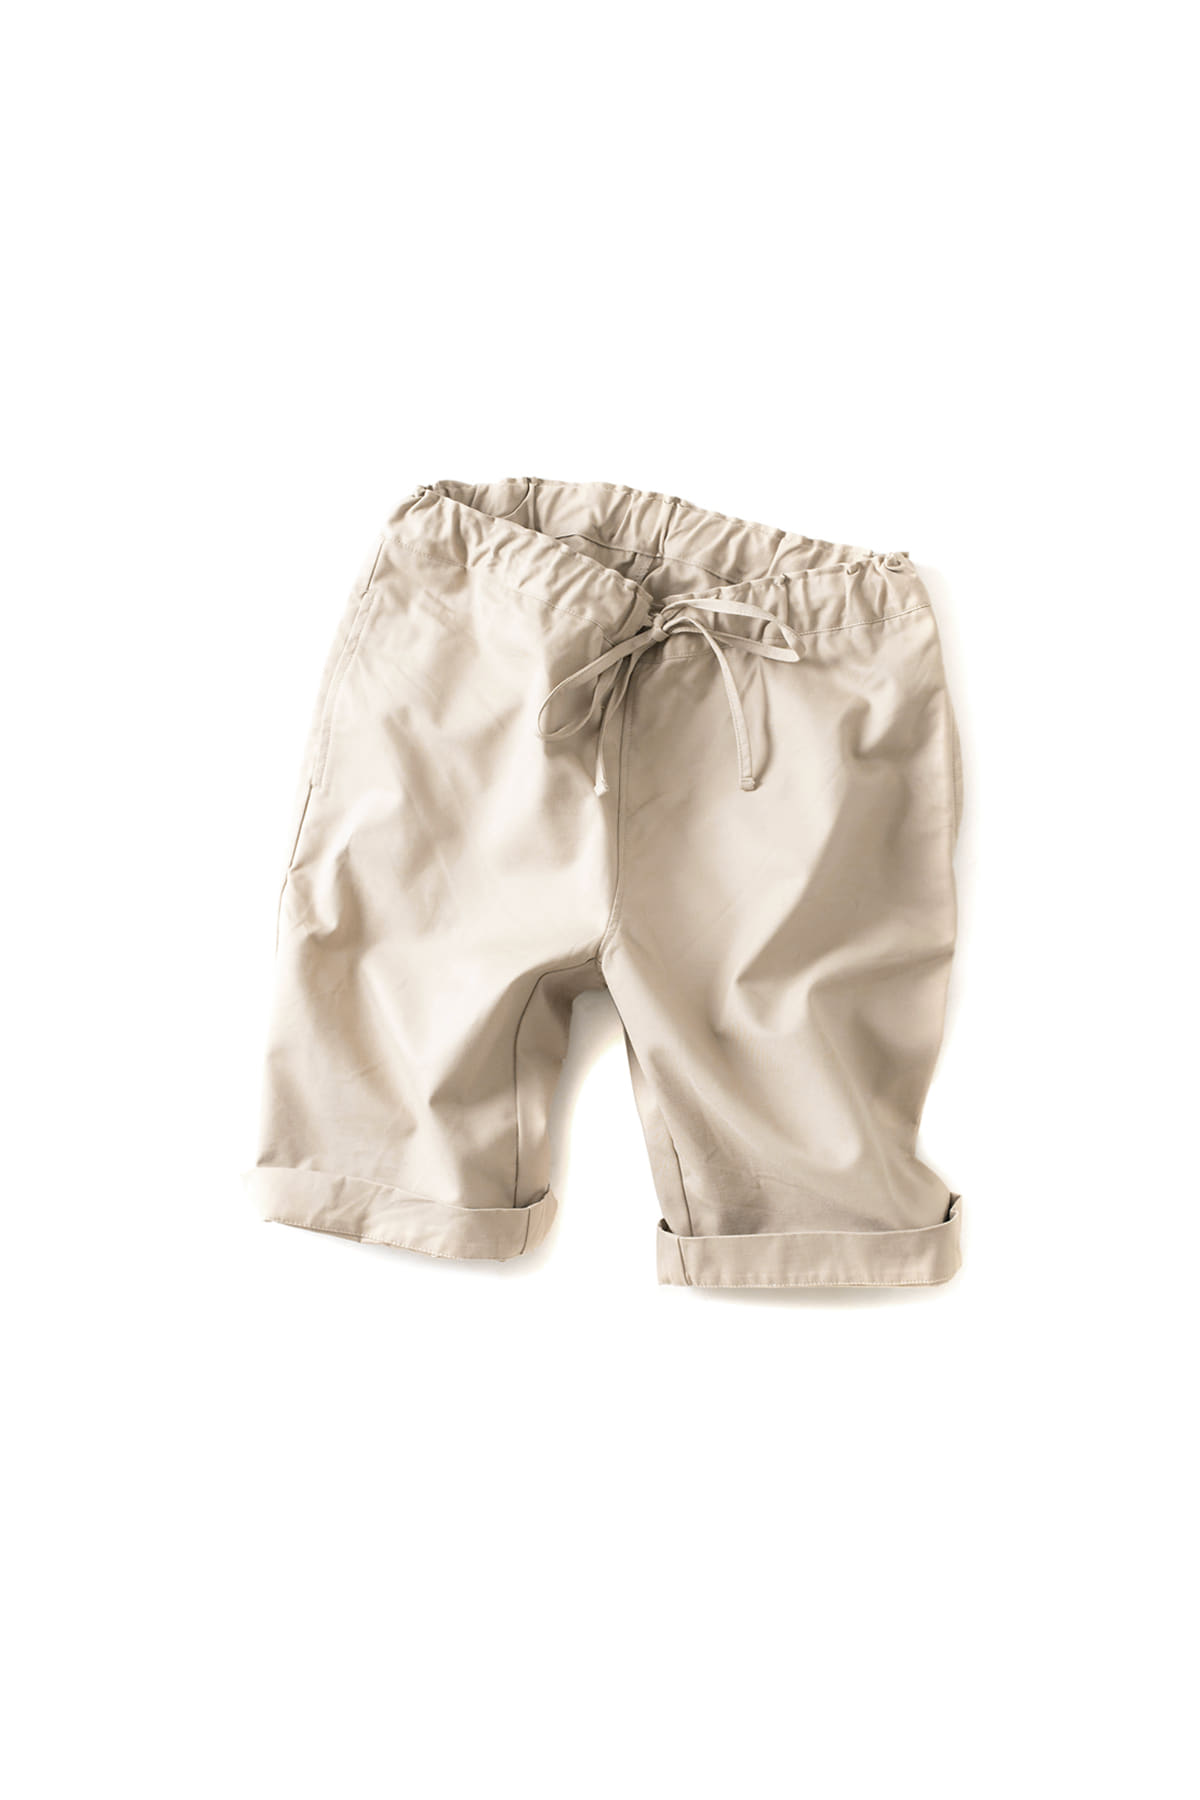 RINEN : Short Easy Pants 44809 (Beige)